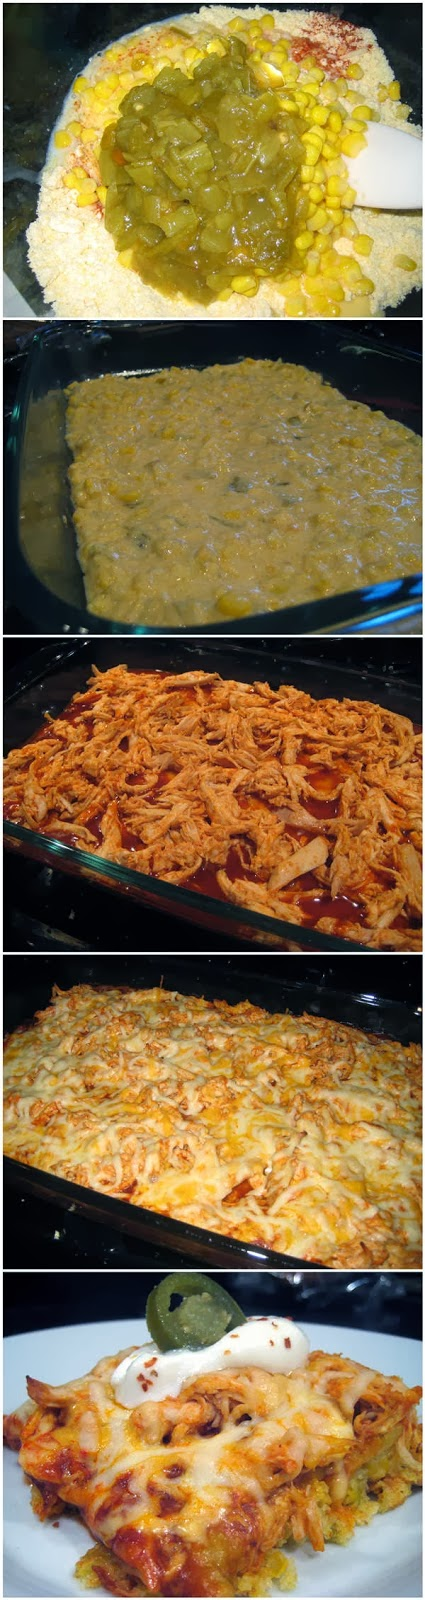 Chicken-Tamale-Casserole-Recipe